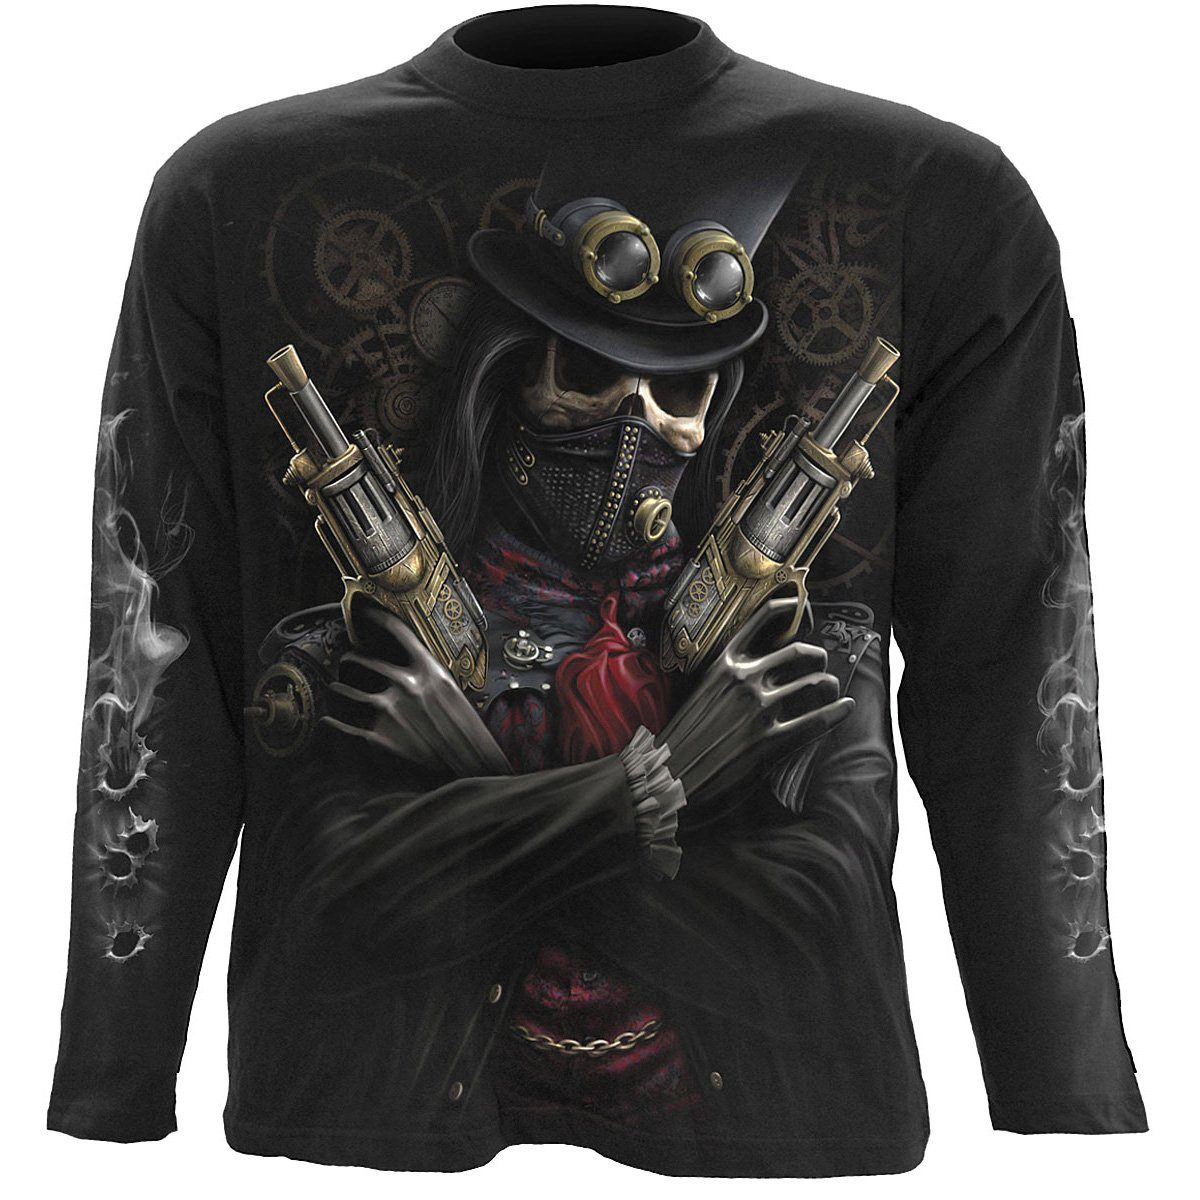 Steampunk Skull Bandit Men's Black Longsleeve Shirt